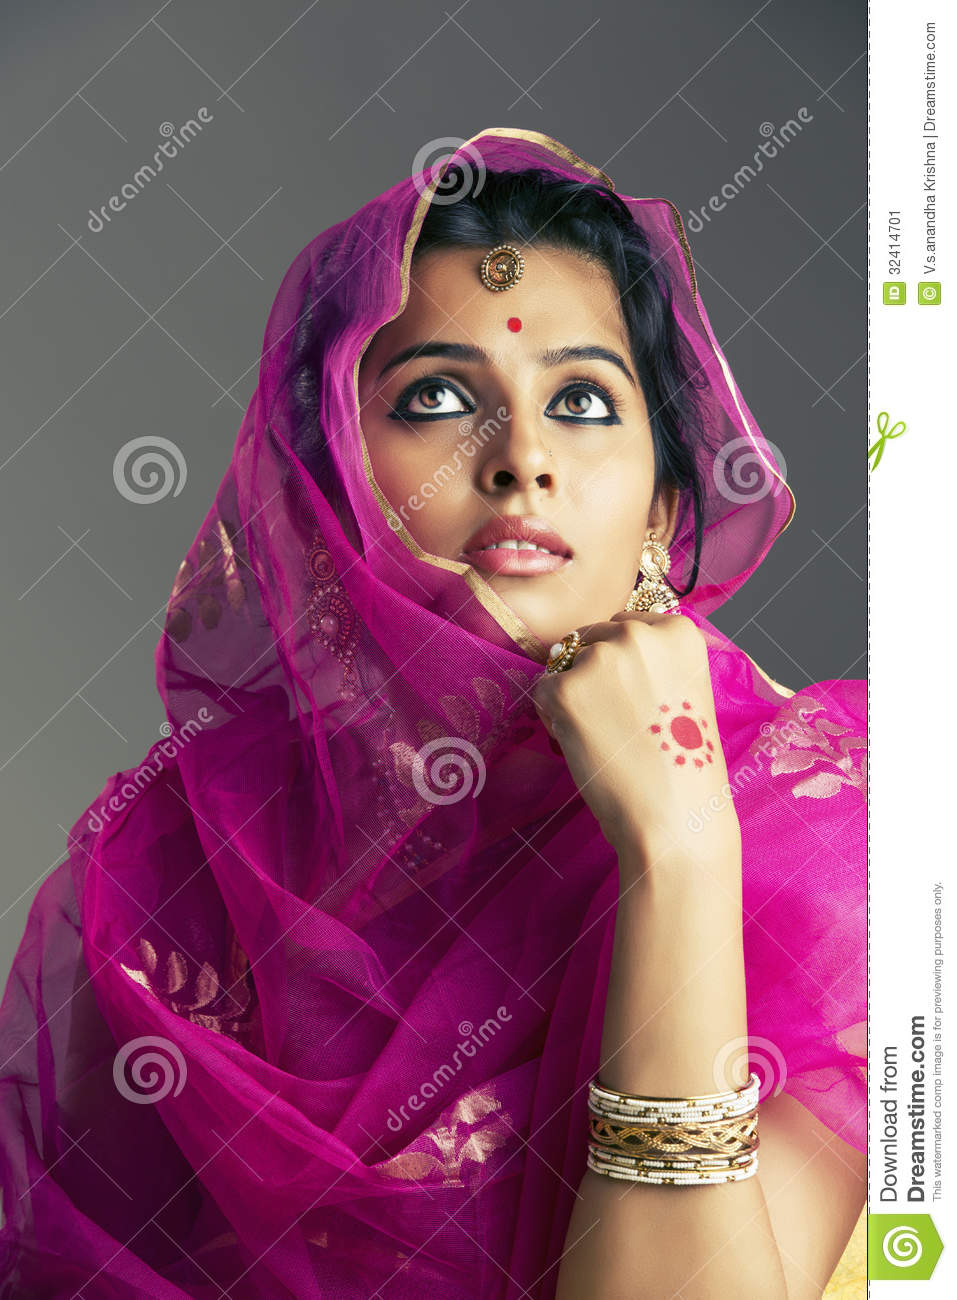 Https Www Dreamstime Com Stock Image Beautiful Indian Girl Looking Up Grey Background Image32414701